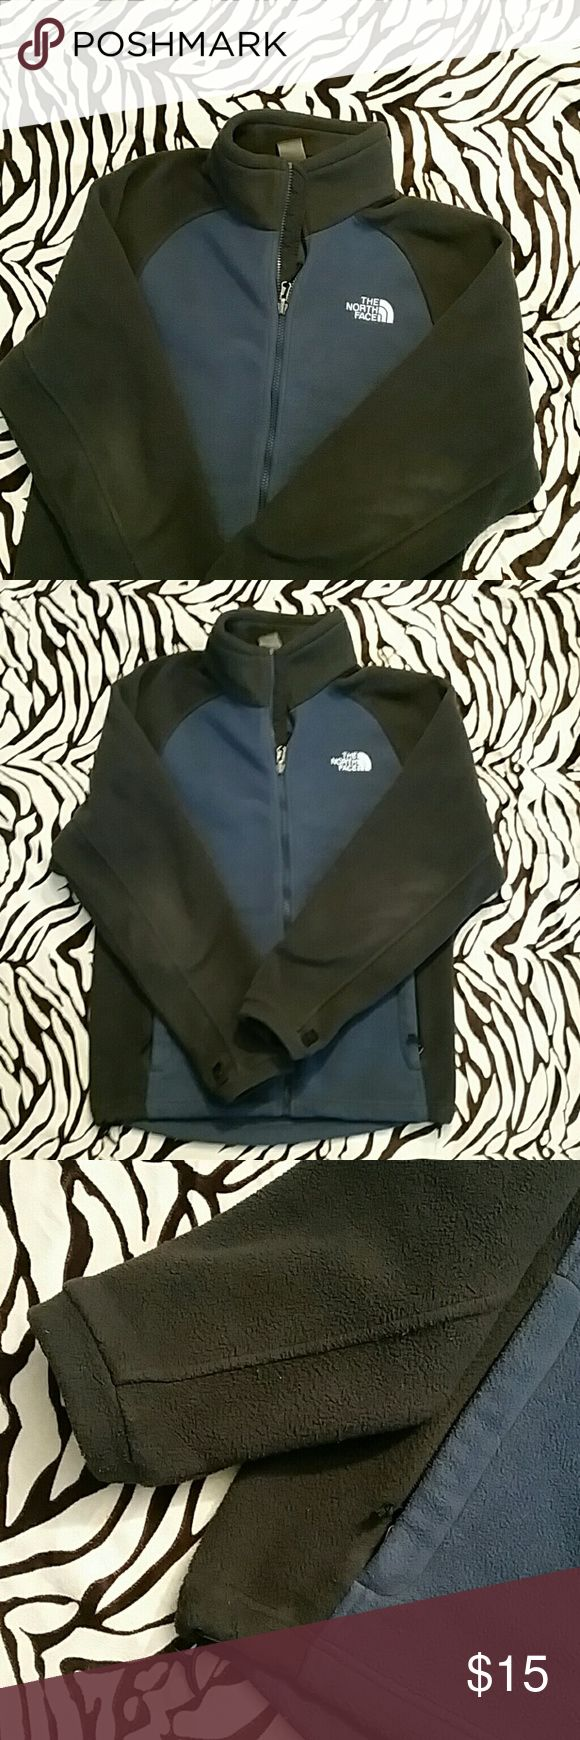 The North Face Mens Jacket Fleece gray/blue fill zip jacket . Authentic jacket. In ok condition Some wear but no holes or stains. The Northface Jackets & Coats